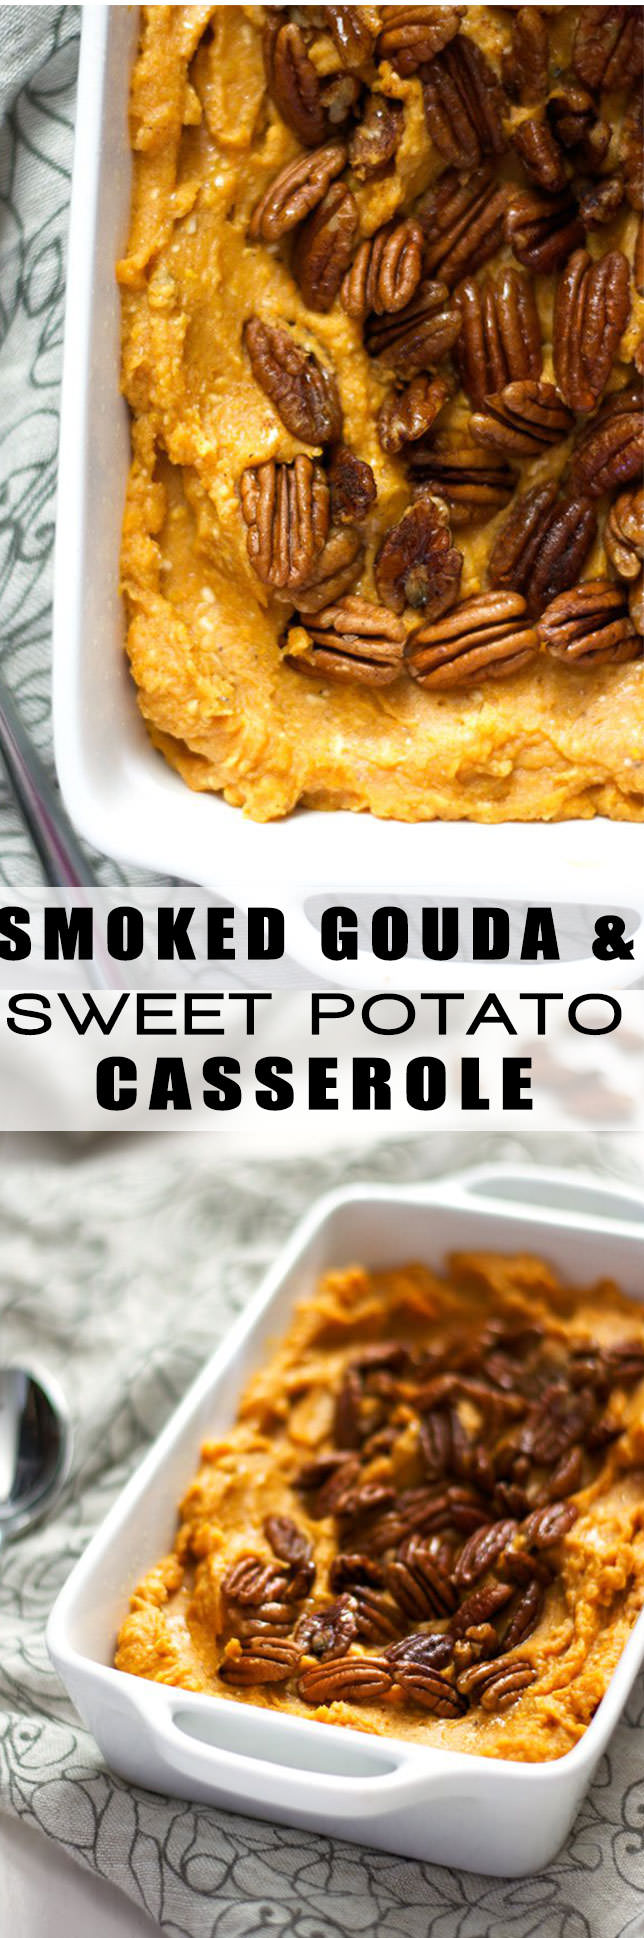 This Smoked Gouda and Sweet Potato Casserole with Spiced Pecans is the perfect fall side dish as it is made lighter with cauliflower but is full of sweet and spicy flavor!